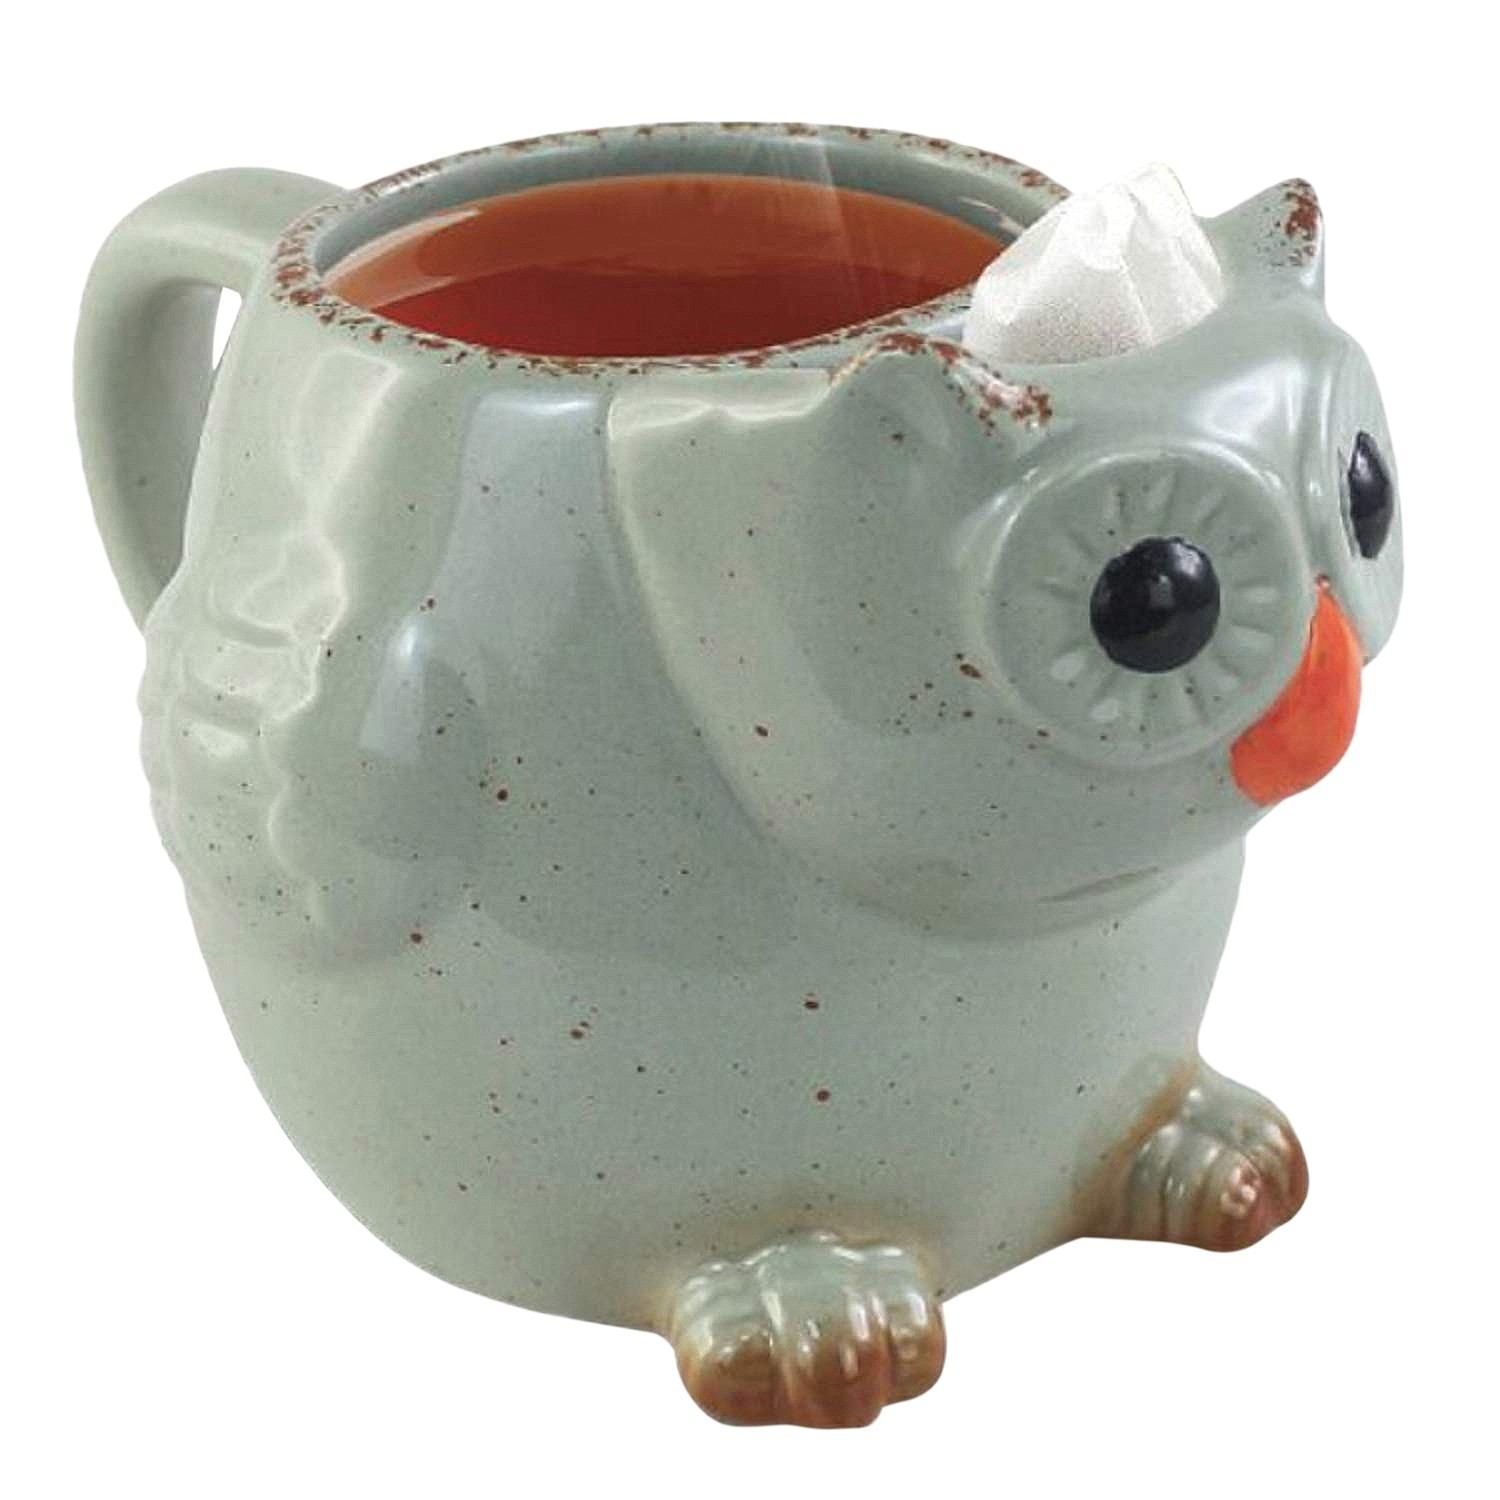 Volar Fashion Animal Shaped Tea Mugs Cute Ceramic Elephant Puppy Dog Cat Or Owl Tea Cup With Built In Tea Bag Holder Walmart Com Walmart Com